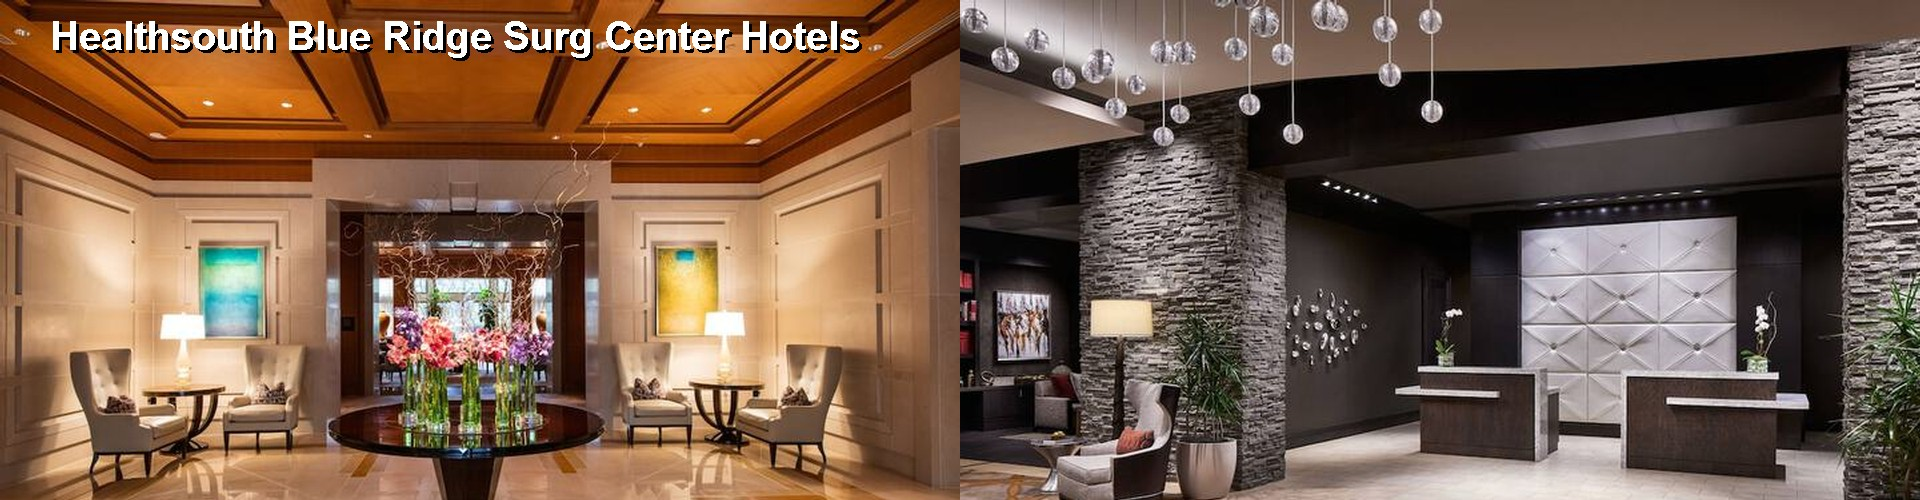 5 Best Hotels near Healthsouth Blue Ridge Surg Center